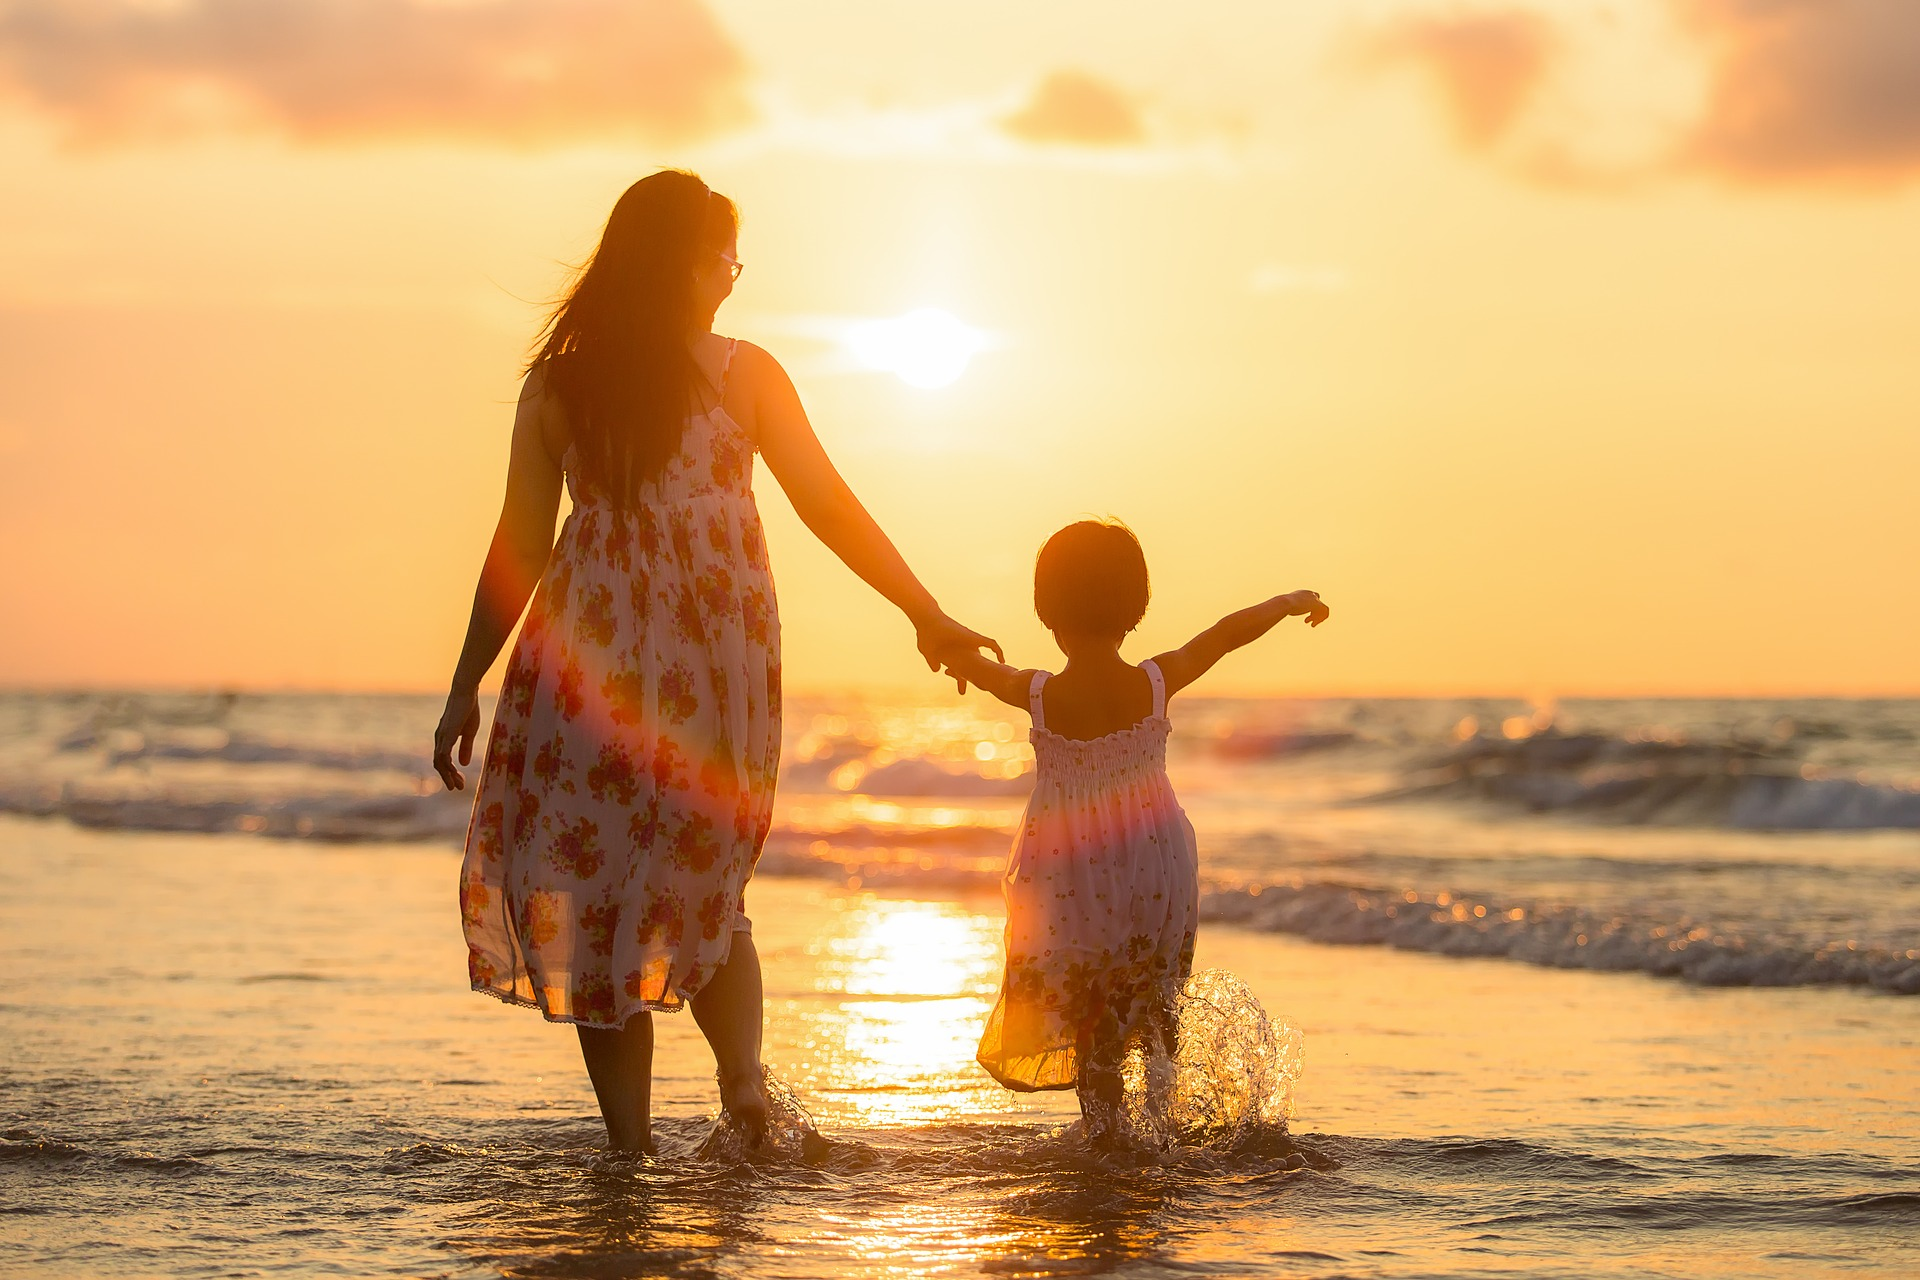 a mother and daughter holding hands walking along the beach at sunset